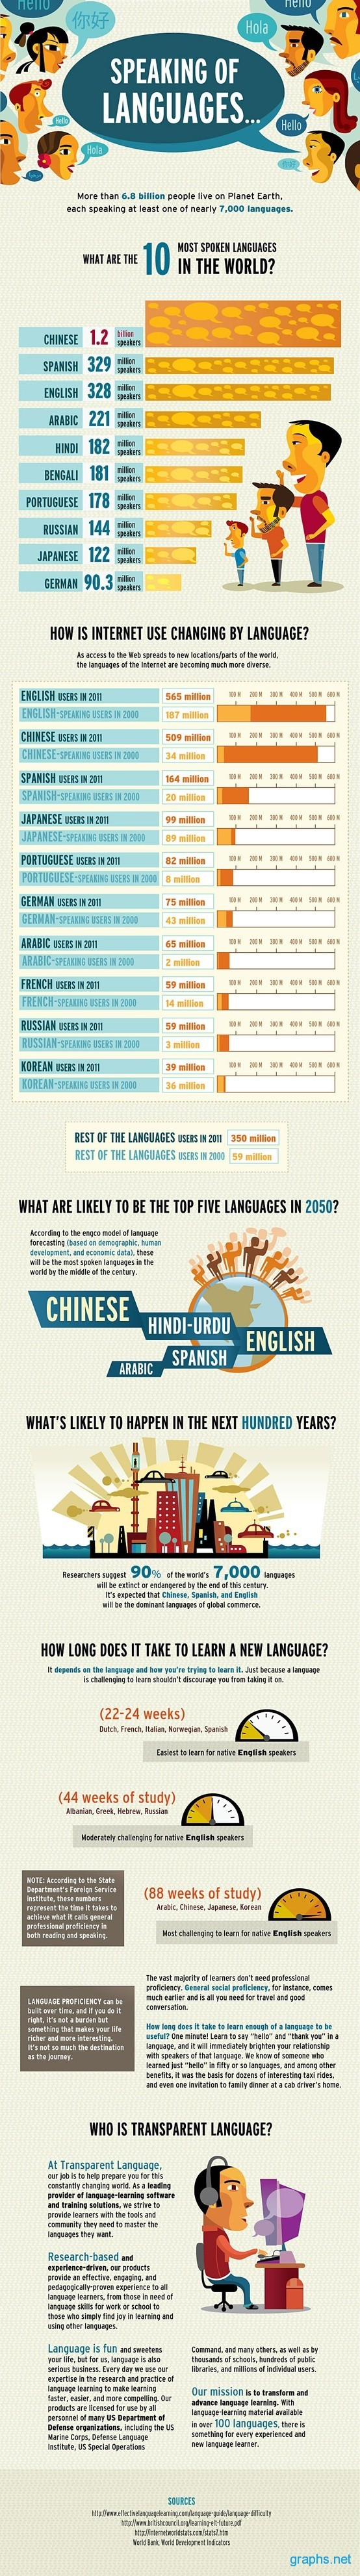 Statistics of Languages Spoken in the World